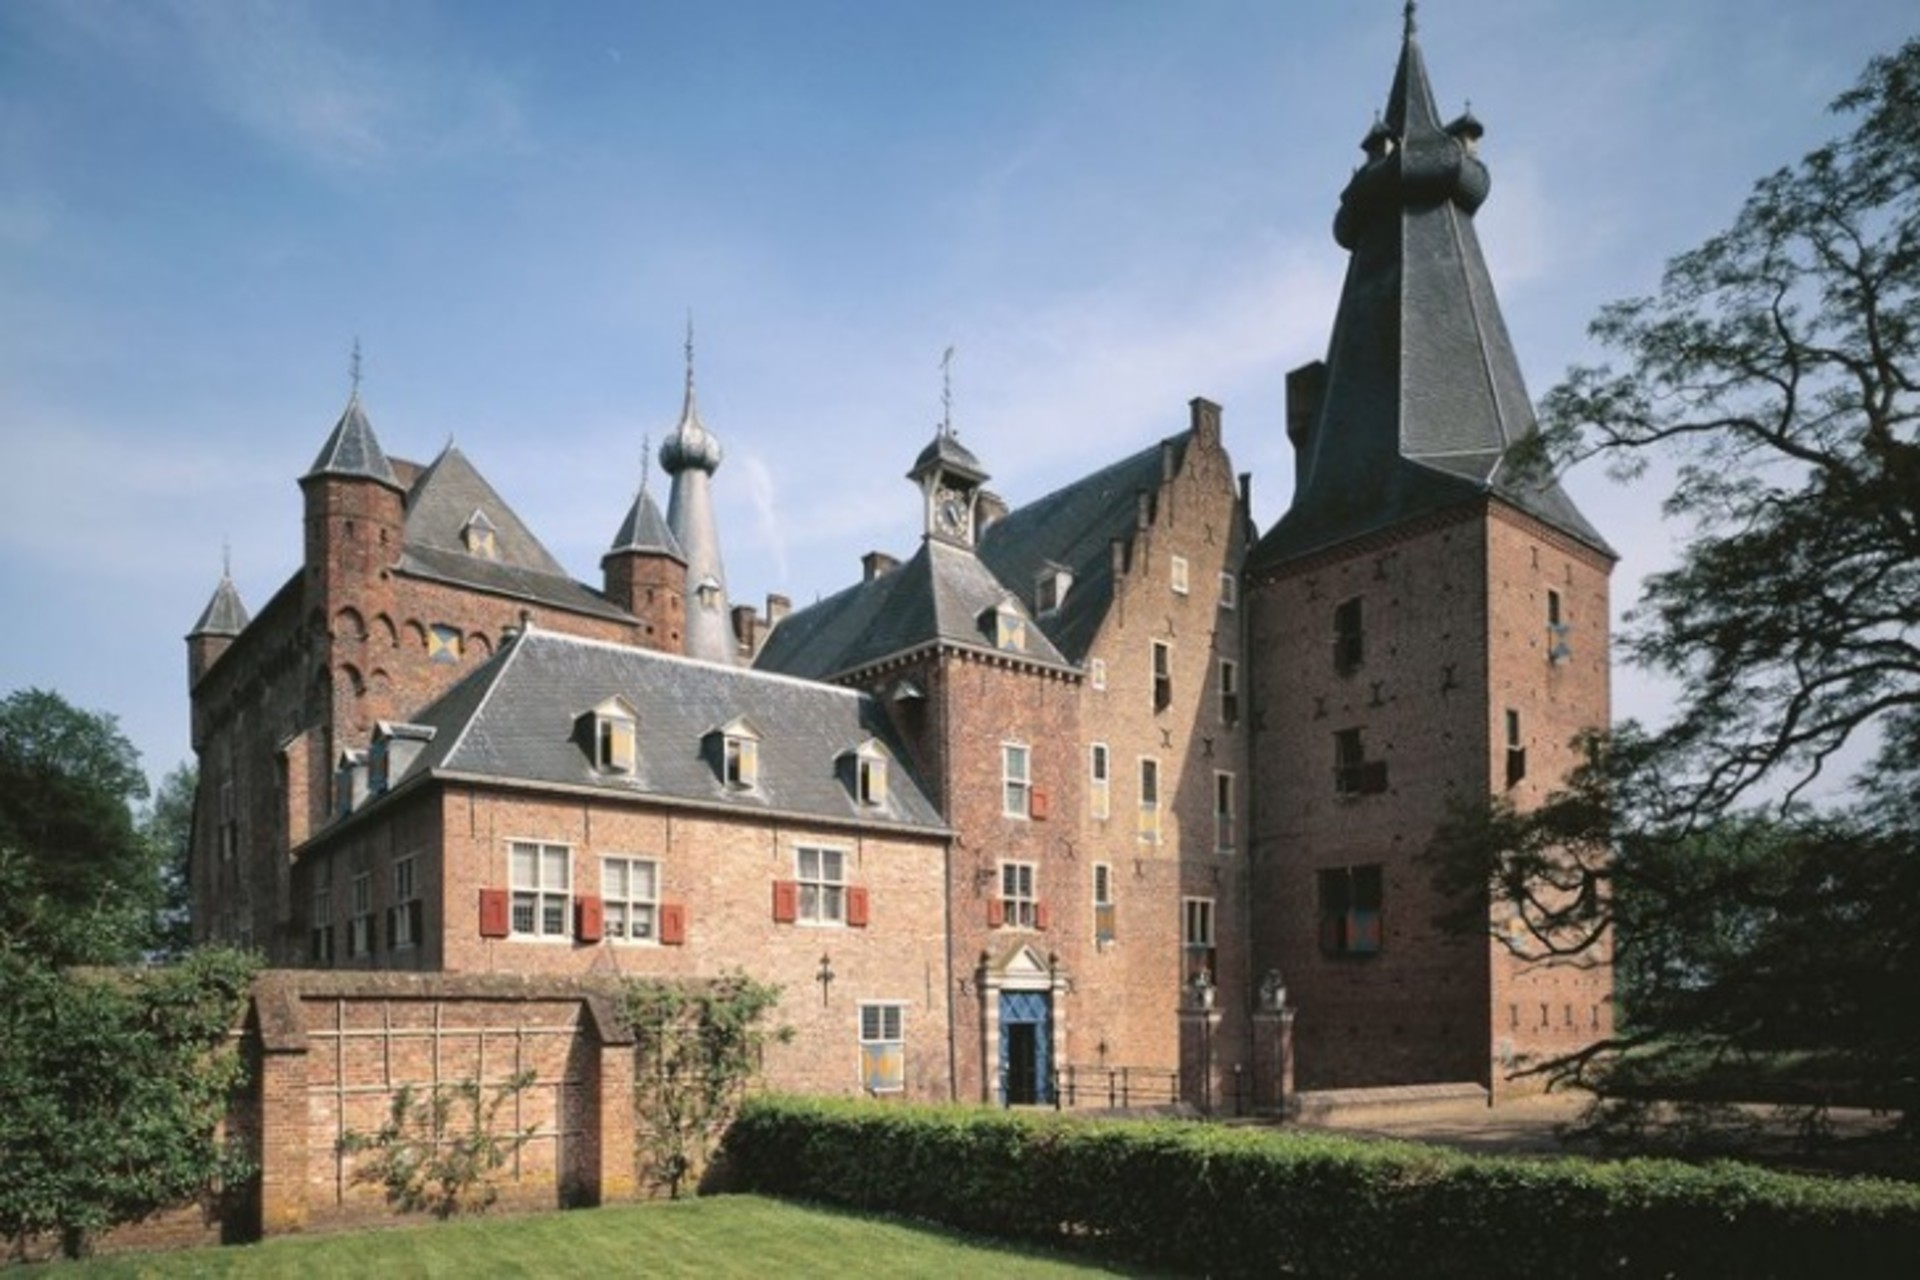 Doorwerth Castle